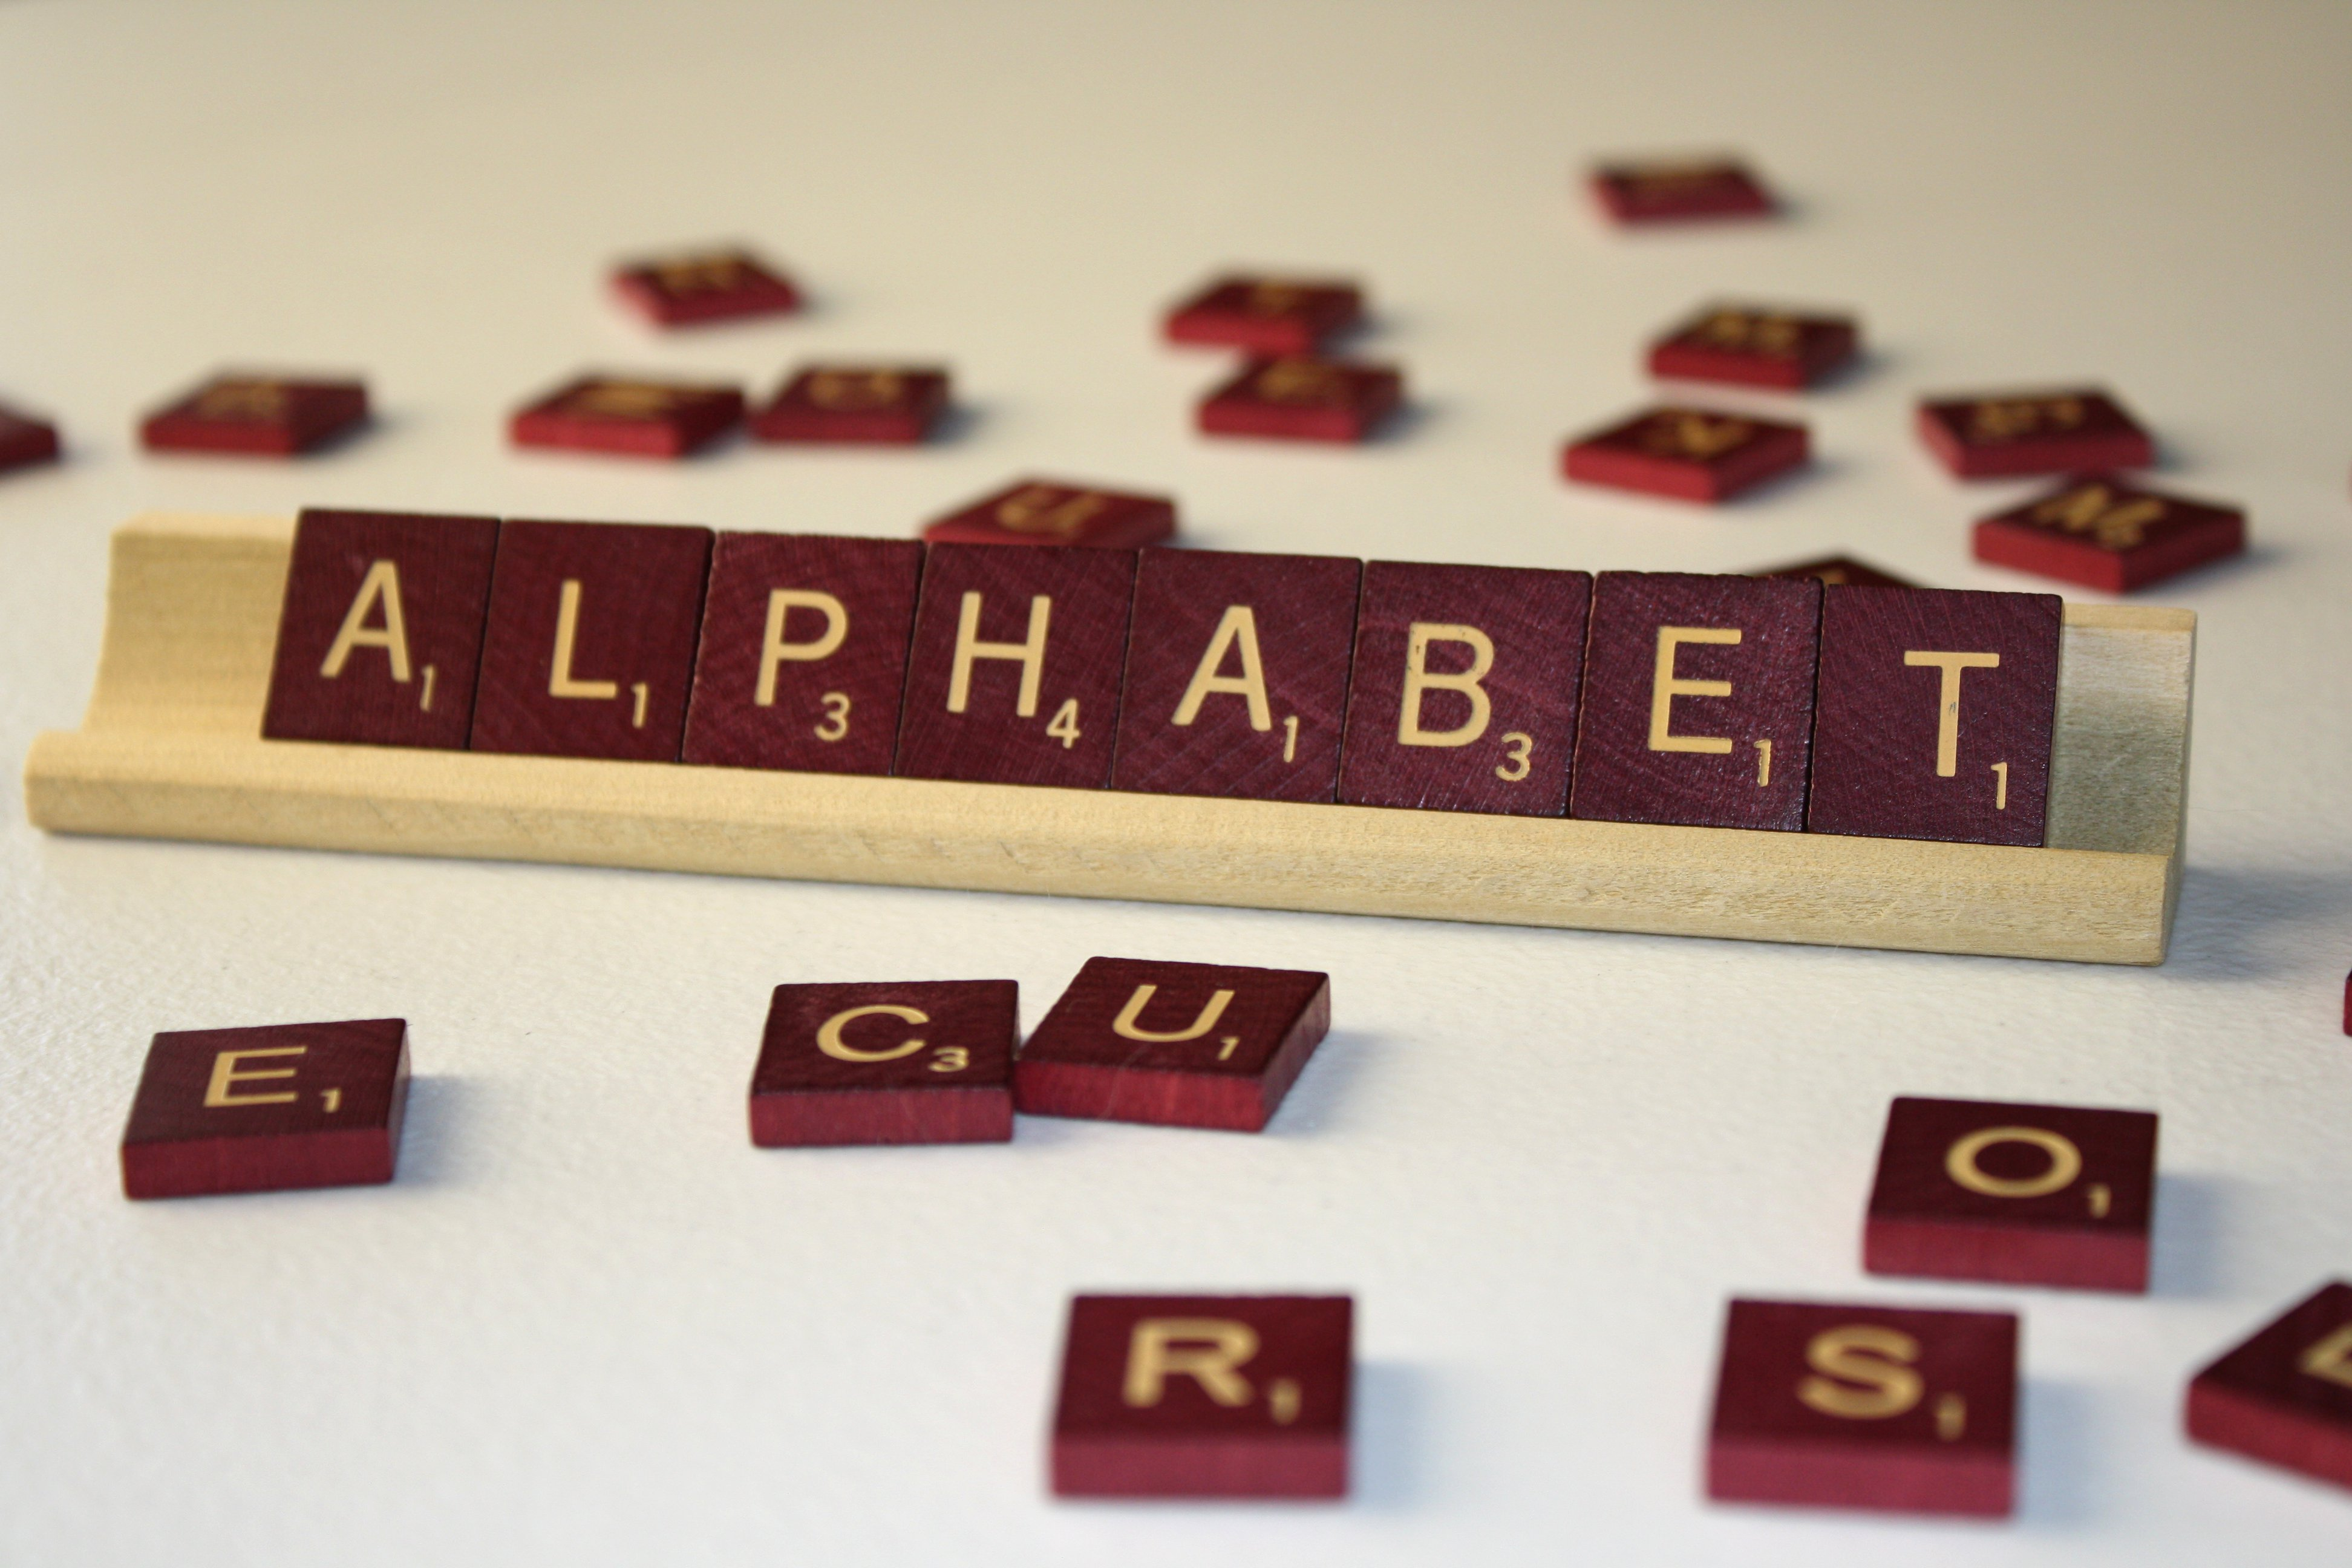 Scrabble clipart kind word Alphabet Scrabble High Alphabet Photograph